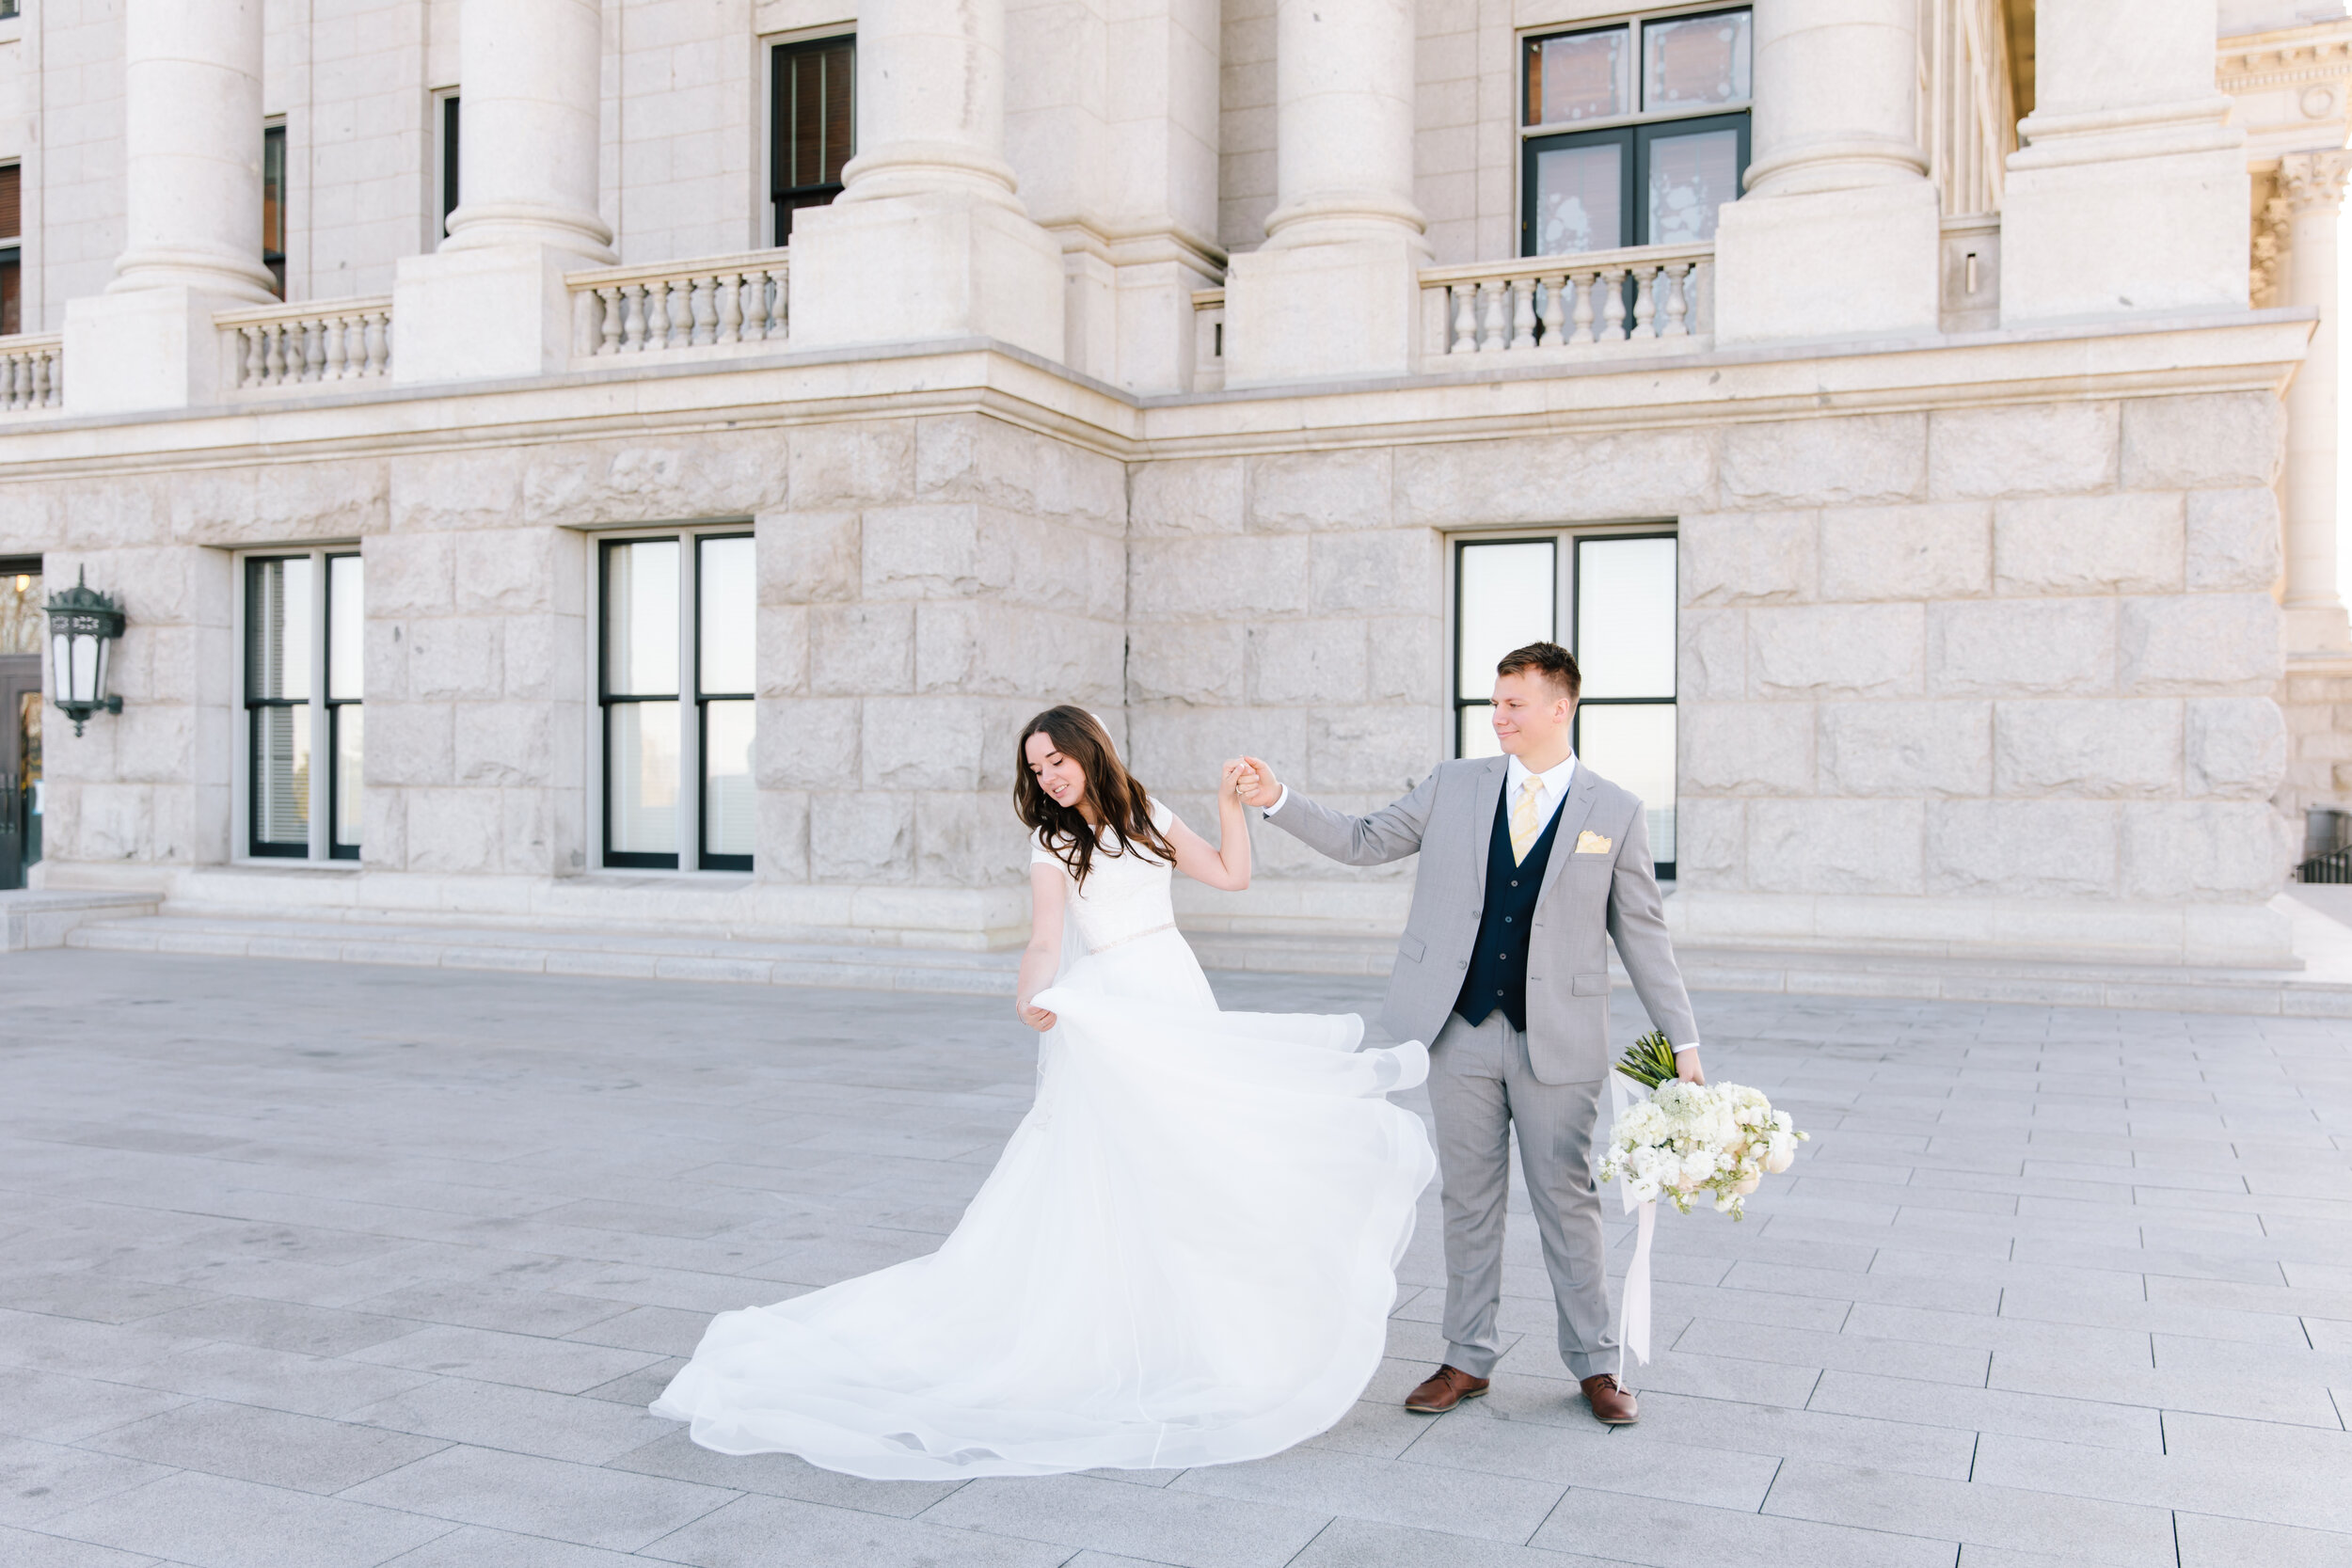 couple dancing flowing wedding dress skirt gorgeous moment captures beautiful bride couple inspiration spin the bride mens wedding attire inspiration wedding outfit for men grey suit dark turquoise vest yellow tie and handkerchief professional formal photography mens dark brown shoes #formals #saltlakecity #capitalbuilding #lovebirds #couplegoals #bridal #weddinginspo #wedding #professional #photographer